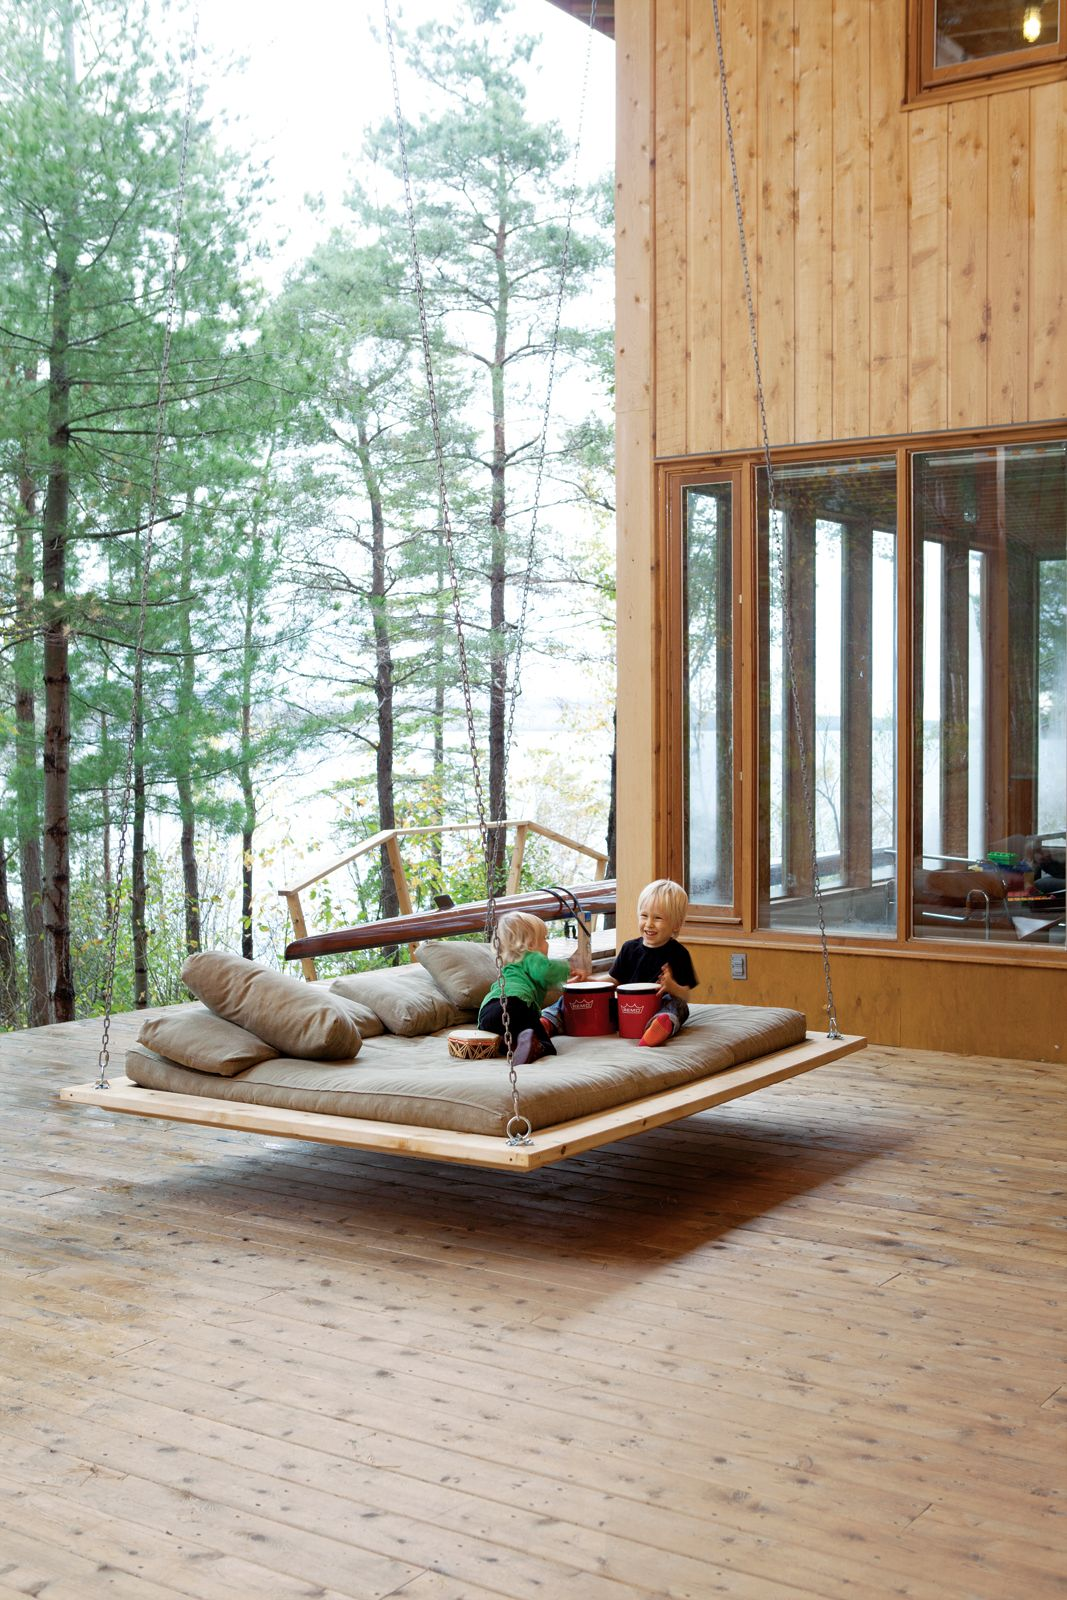 Hanging bed outdoor - Cozy Sleeping Porches For A Perfectly Relaxing Summer